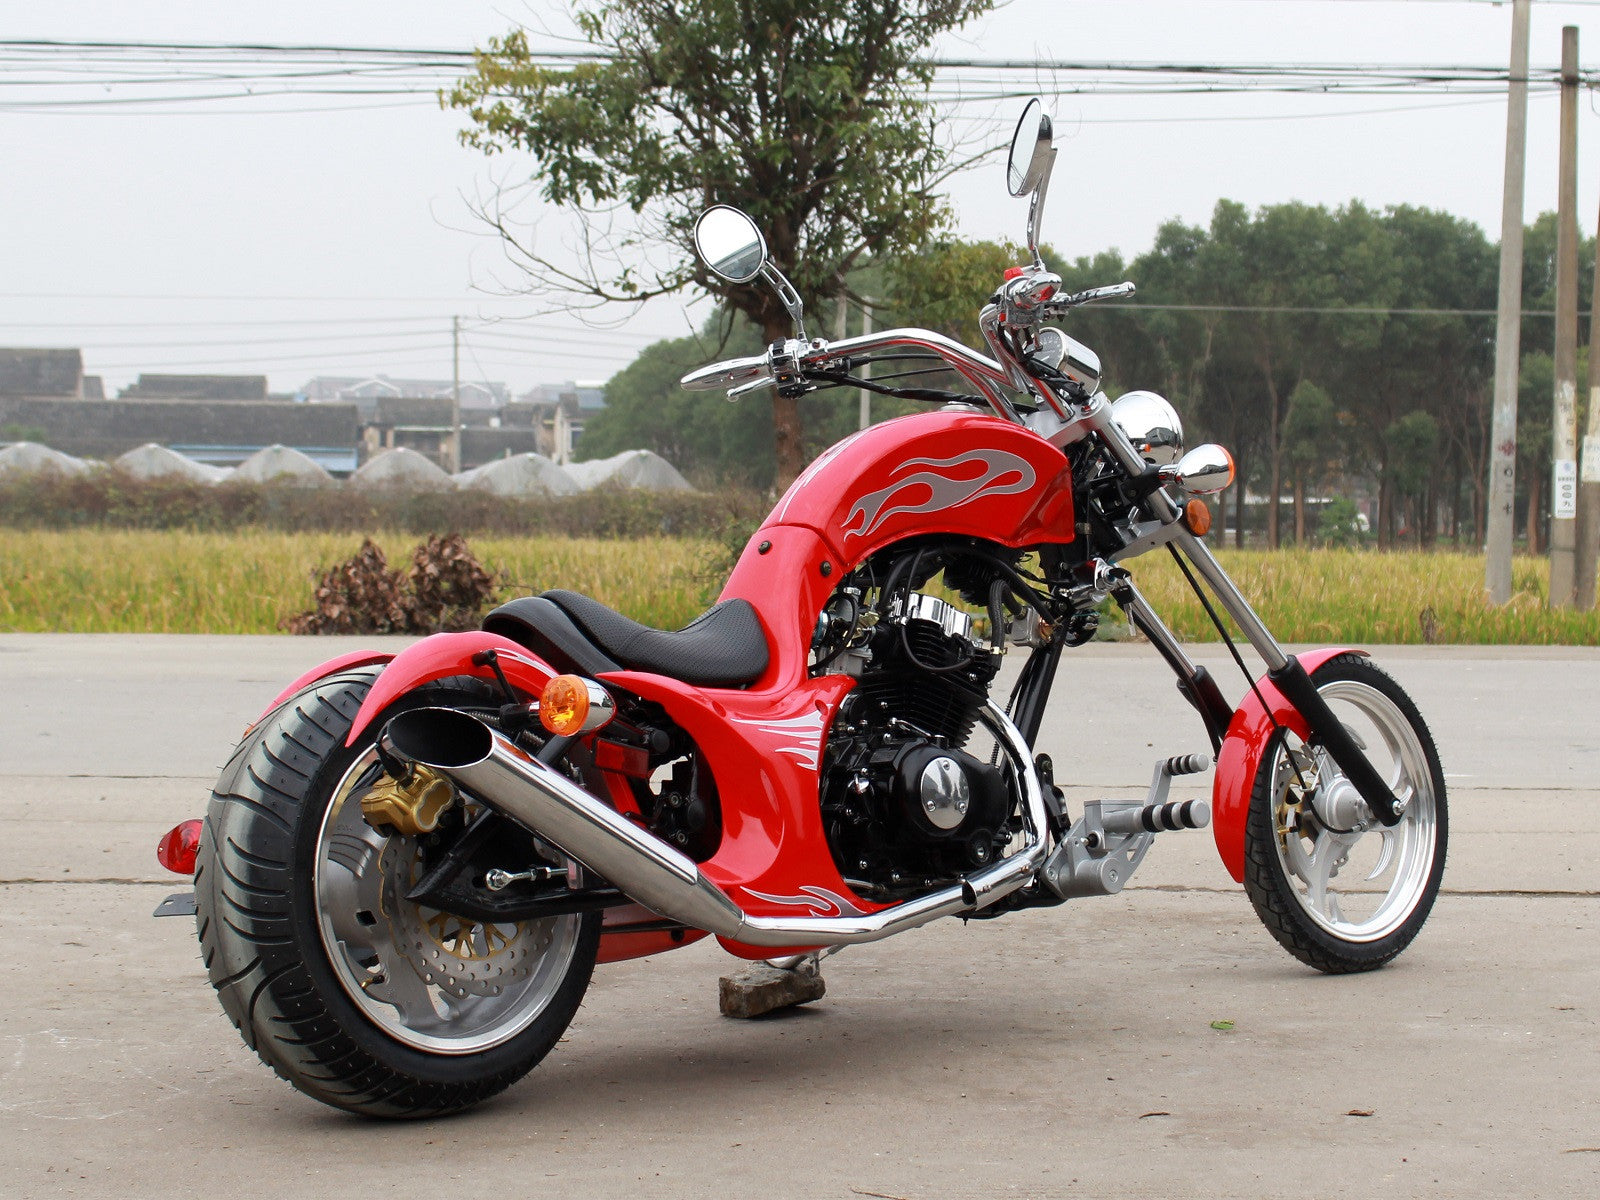 chopper motorcycle mini street legal bikes 250cc rim rear tire bike choppers motorcycles pocket villain super 50cc parts bobber harley